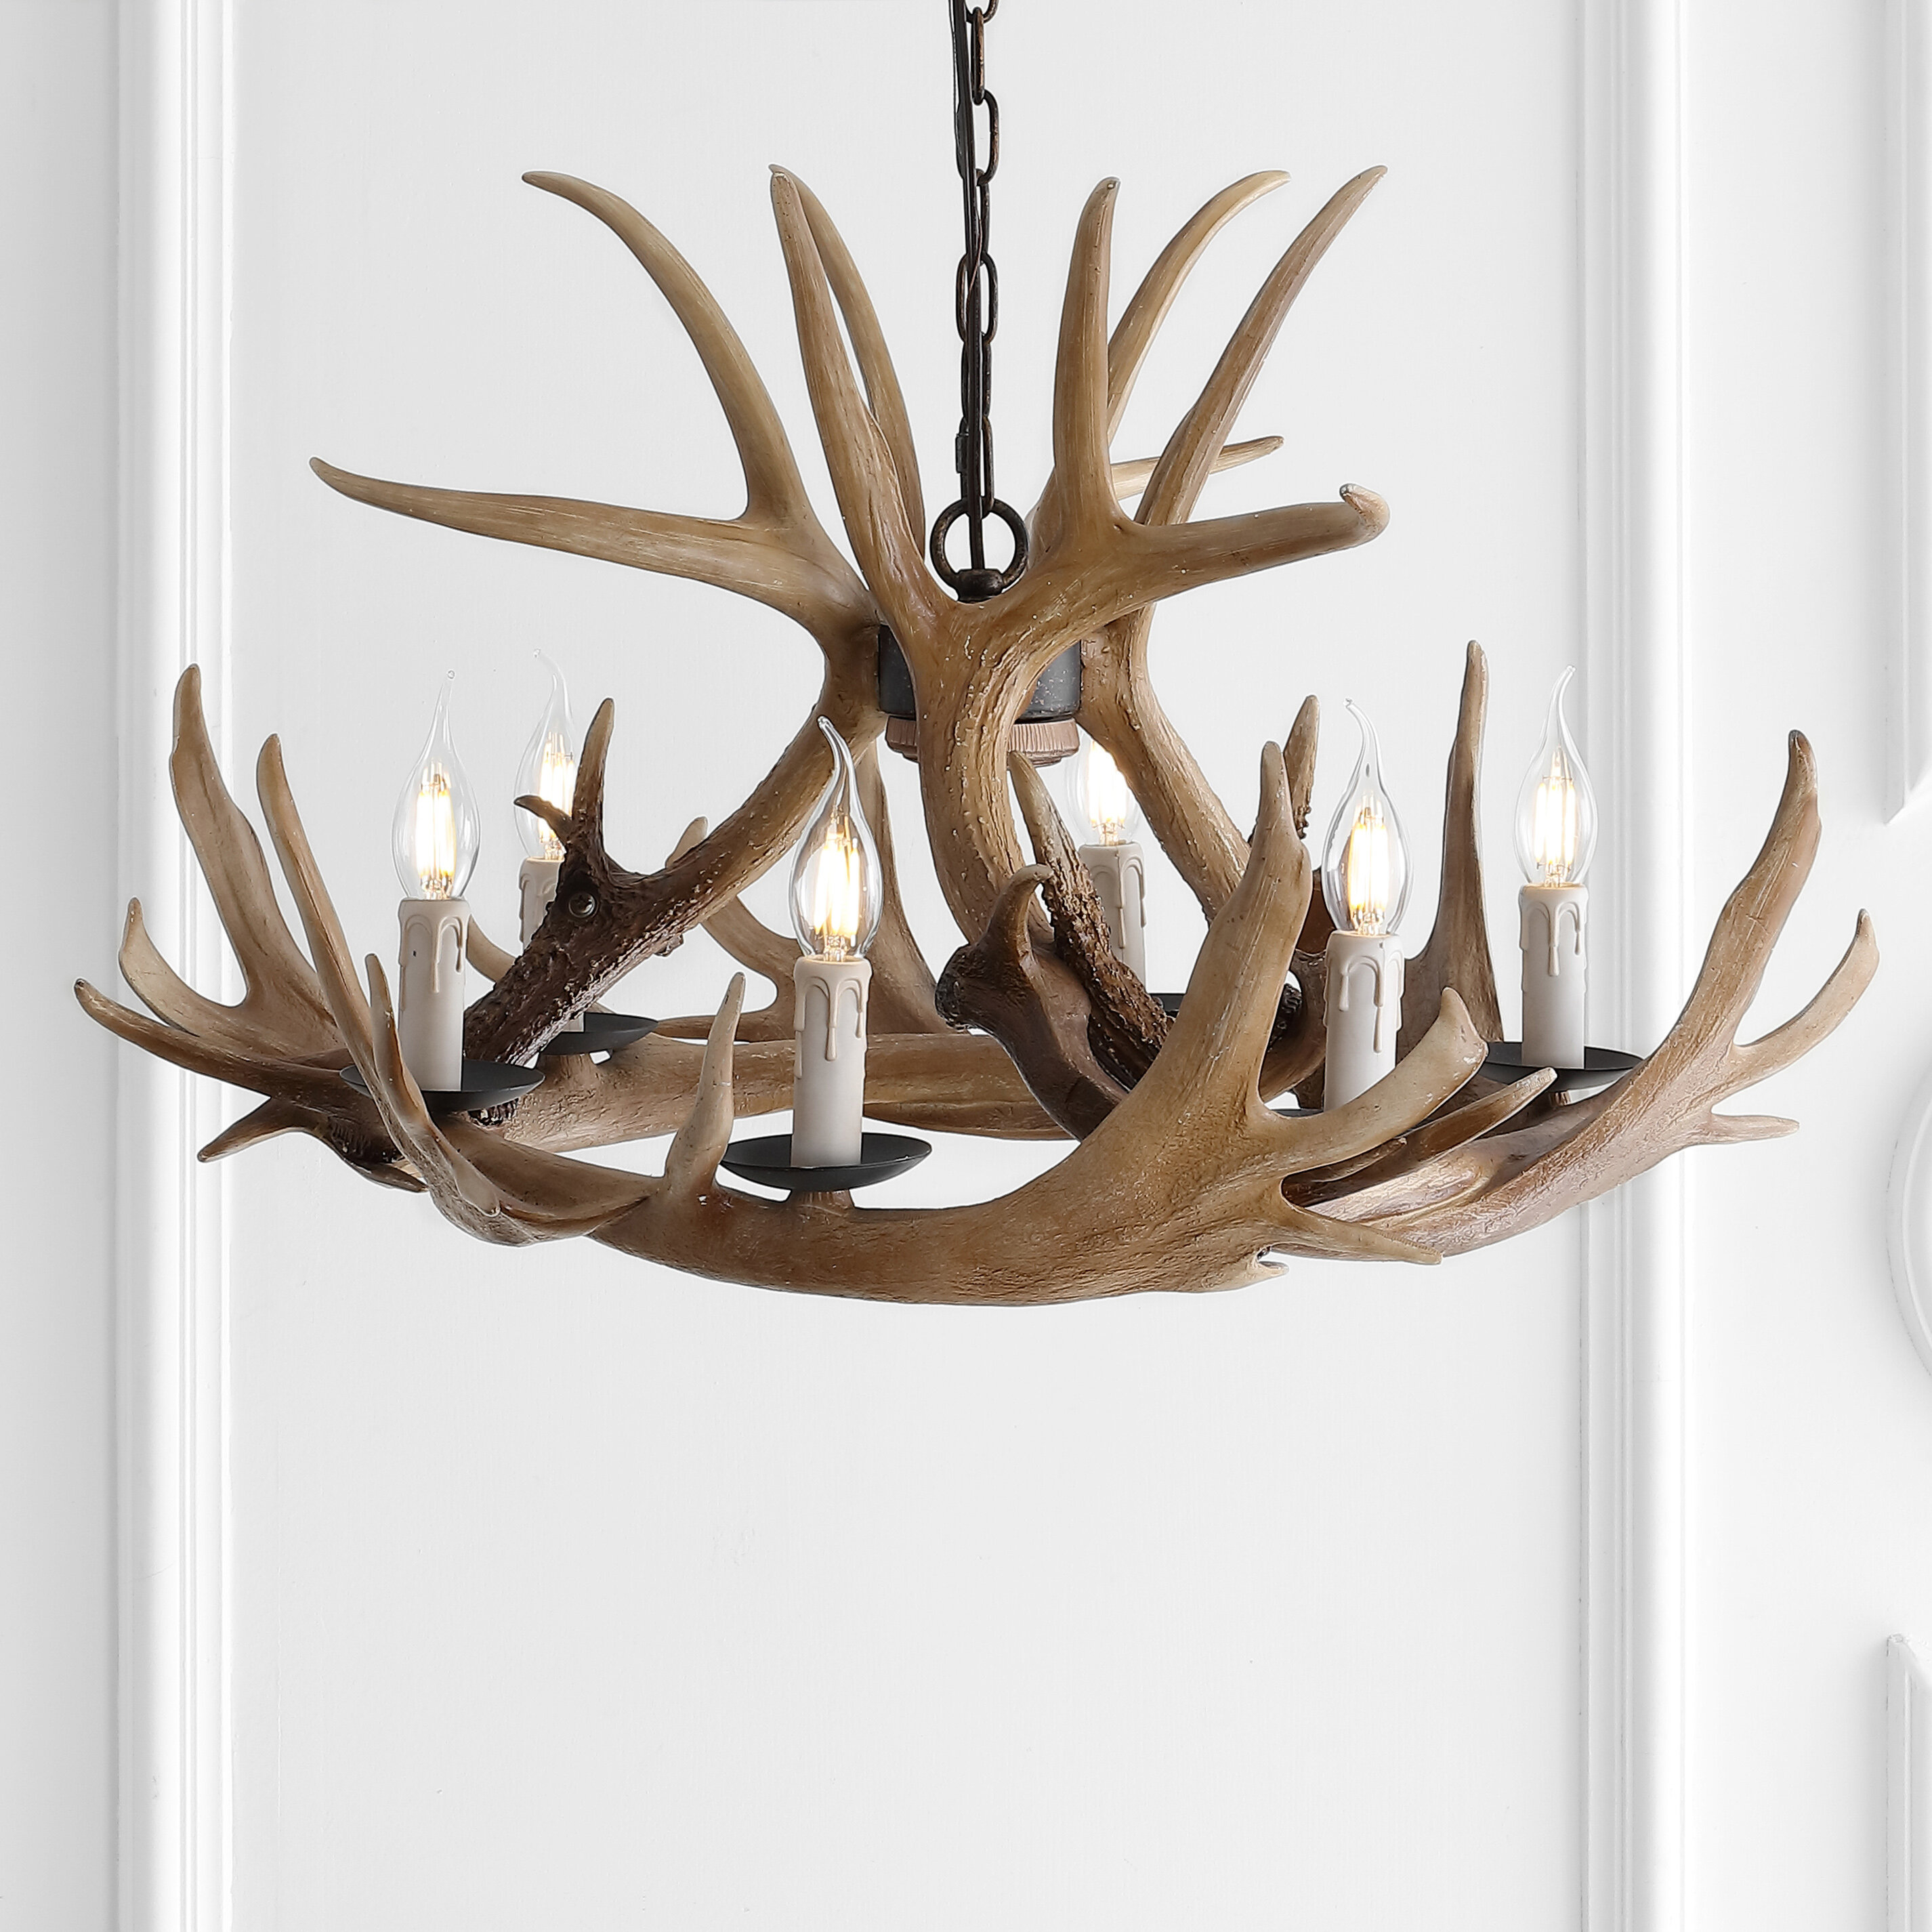 Millwood Pines Rohrbach 6 Light Candle Style Classic Traditional Chandelier With Antler Accents Reviews Wayfair